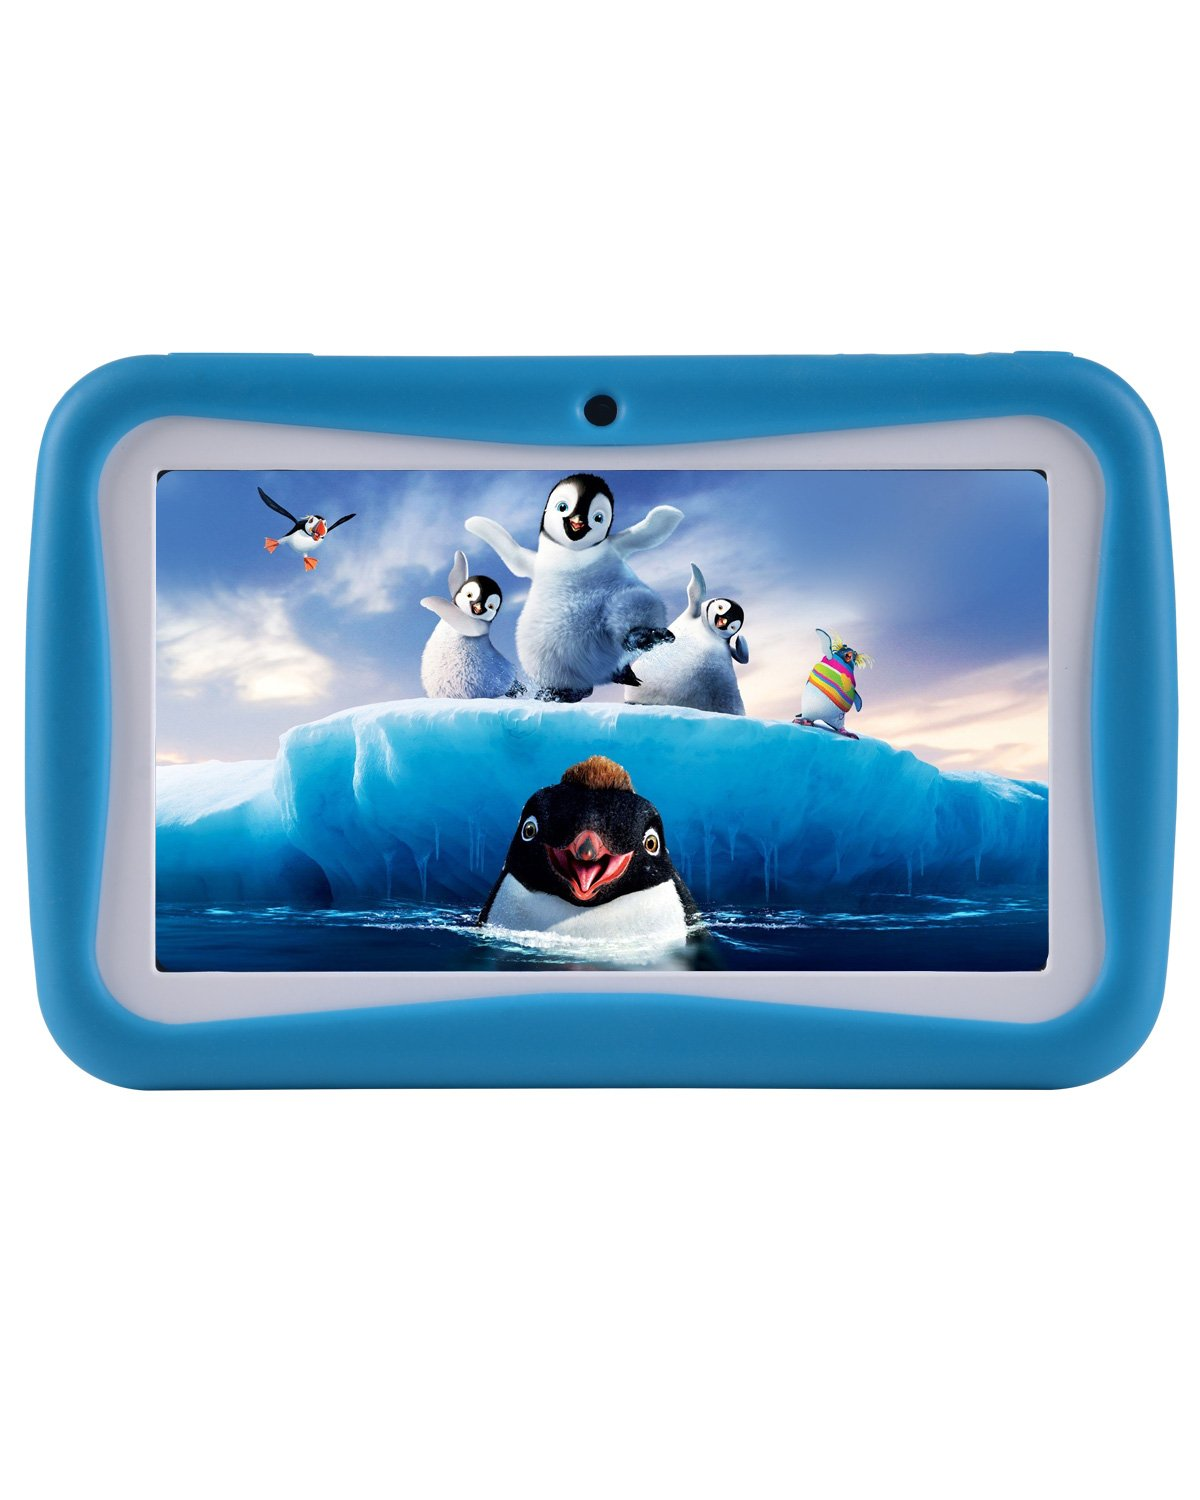 7 Inch Kids Tablet, Andriod Education Kids Tablet With Wifi and Camera, HD Display 1GB+8GB Quad Core, Kids Mode Pre-Installed-Blue